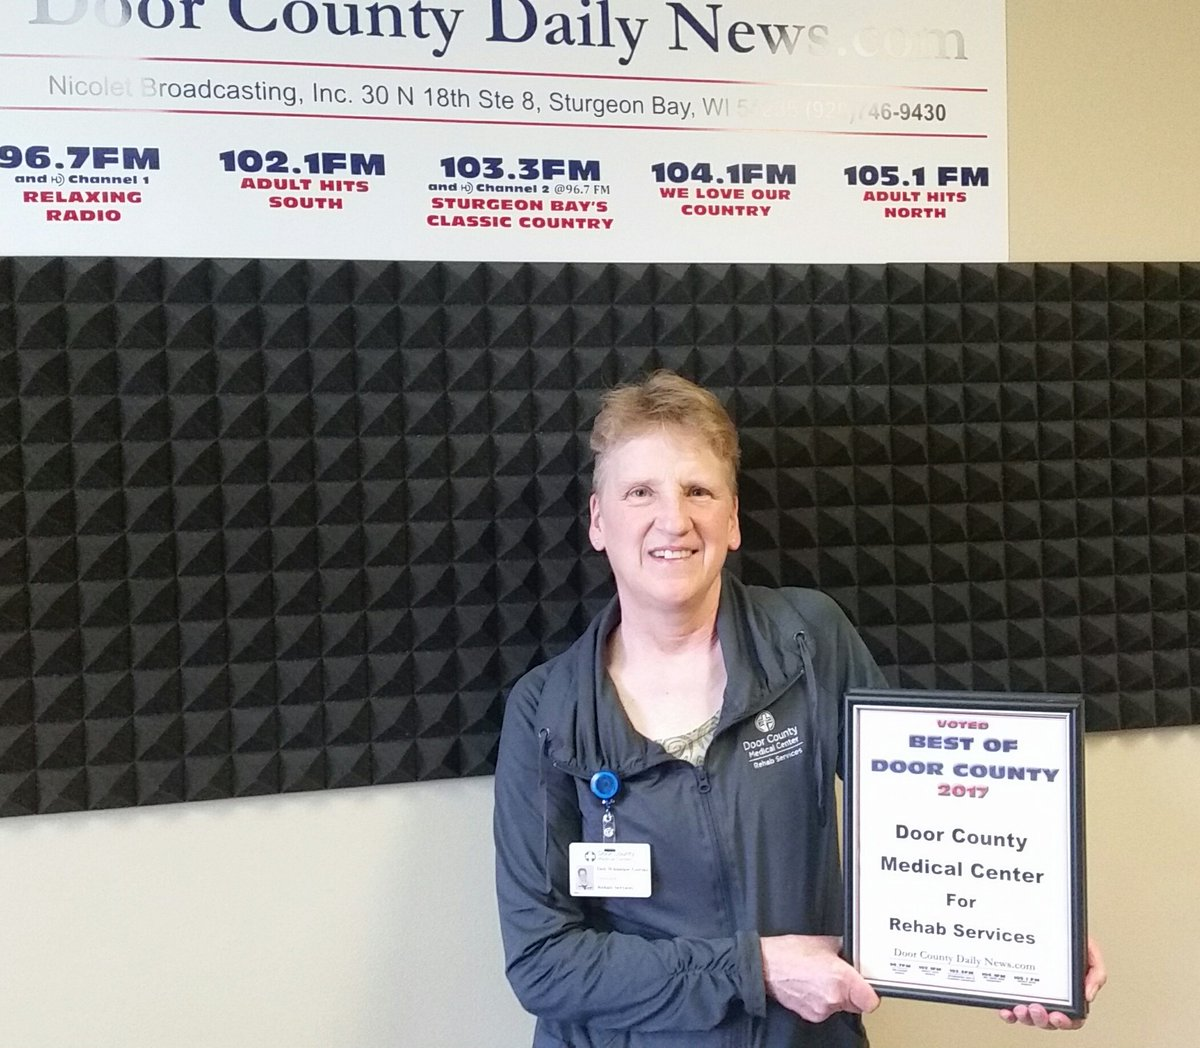 Doorcountydailynews On Twitter At Noon Deb Whitelaw Gorski From